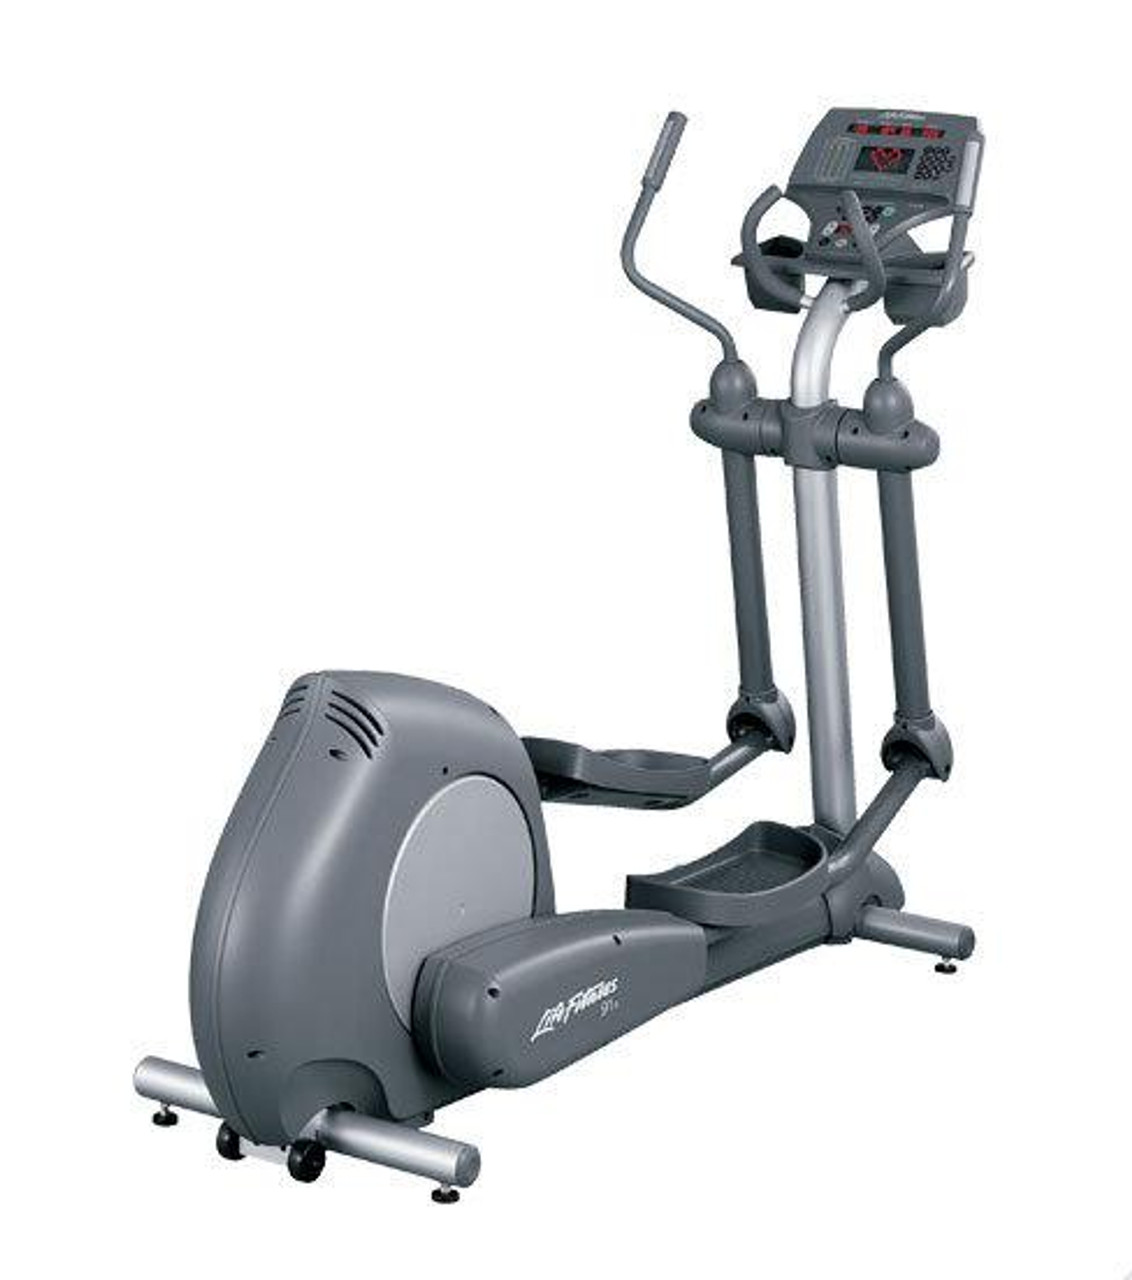 Life Fitness 91Xi elliptical cross trainer